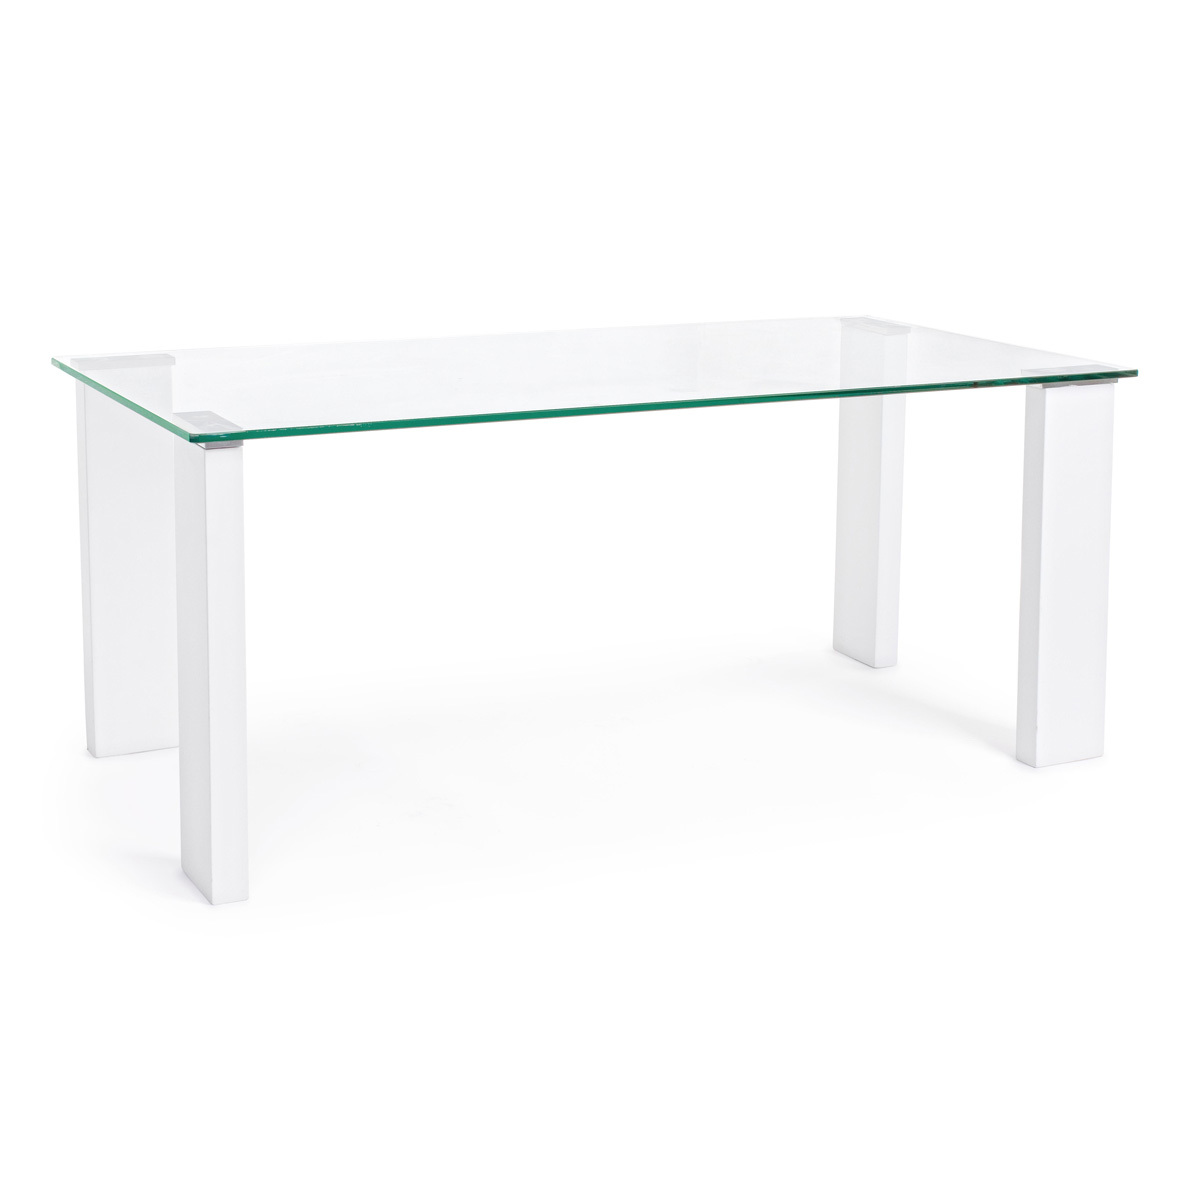 Photos 1: Bizzotto Rectangular table in glass l. 120 x 60 0731963